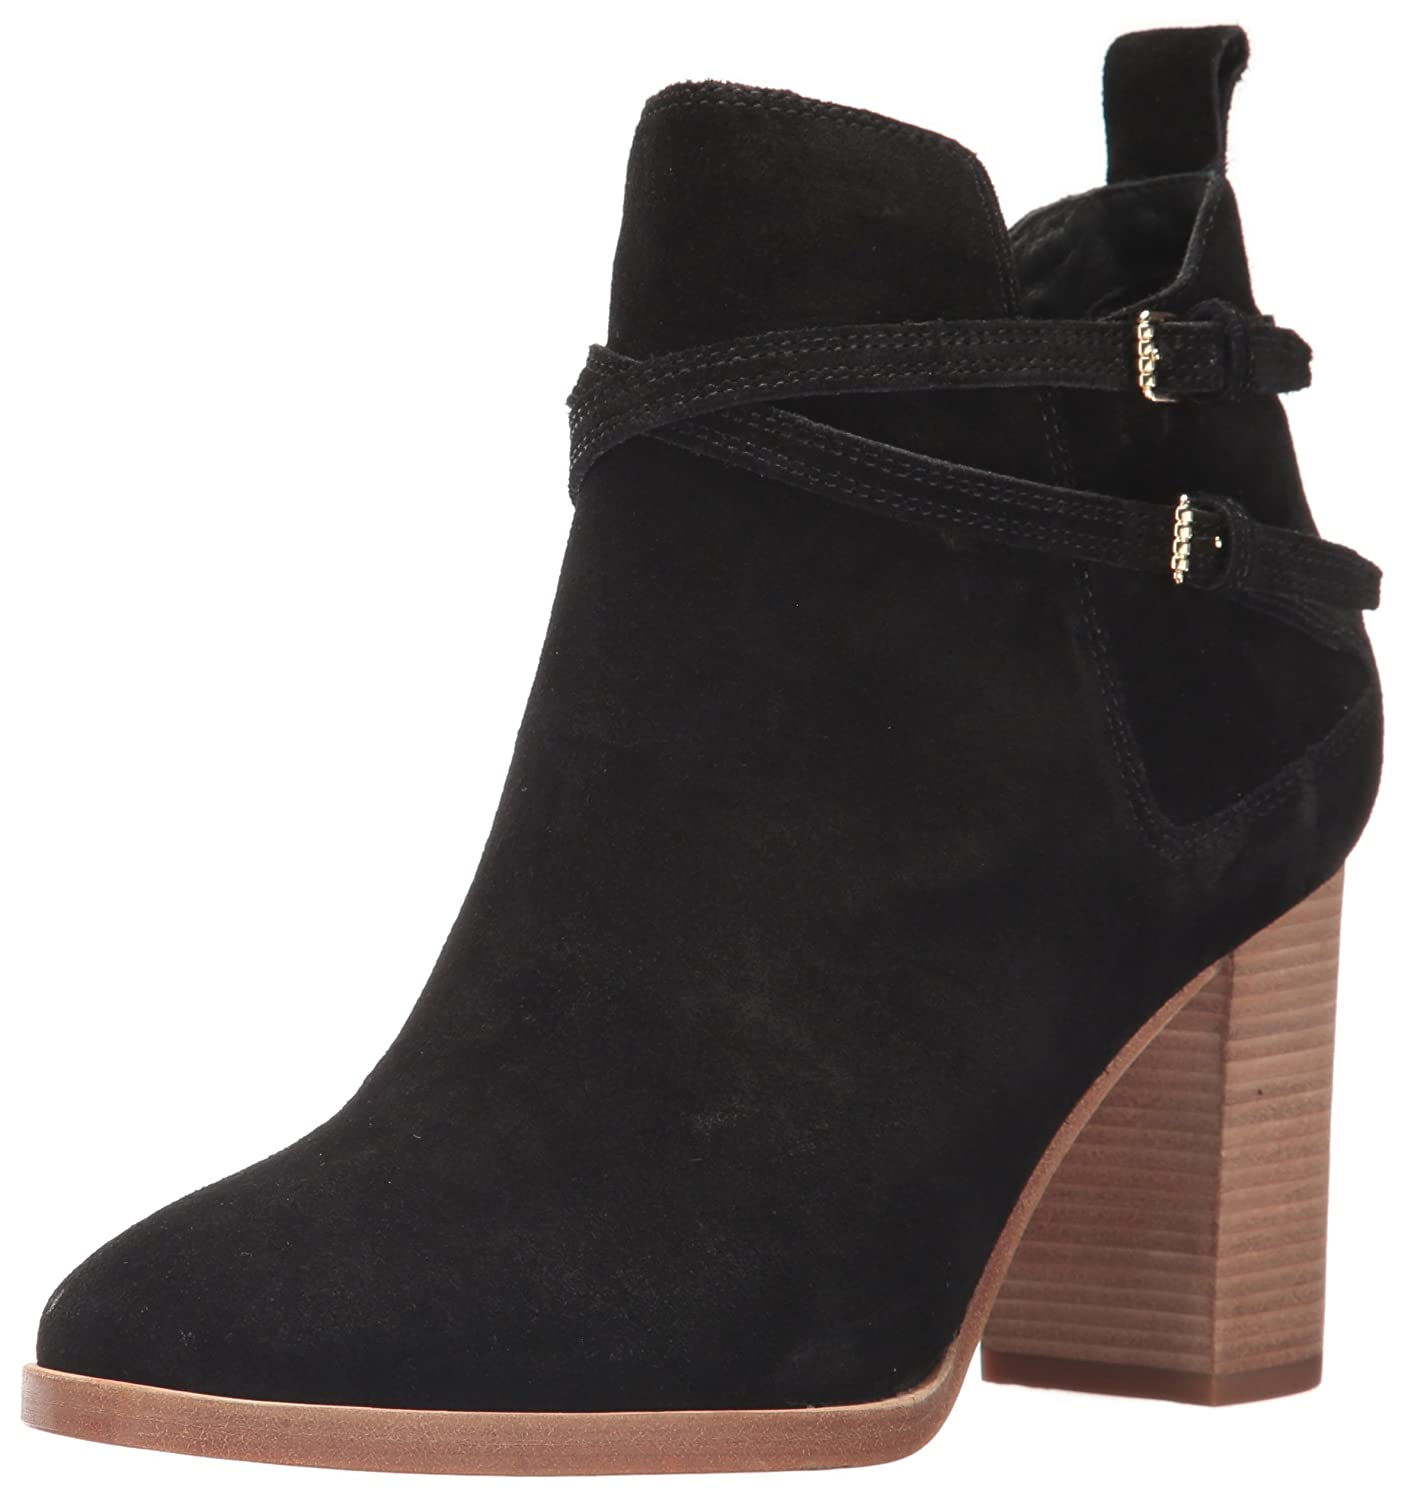 Cole Haan Women's Linnie Bootie Ankle Boot B01MRBKX3M 6.5 B(M) US|Black Suede